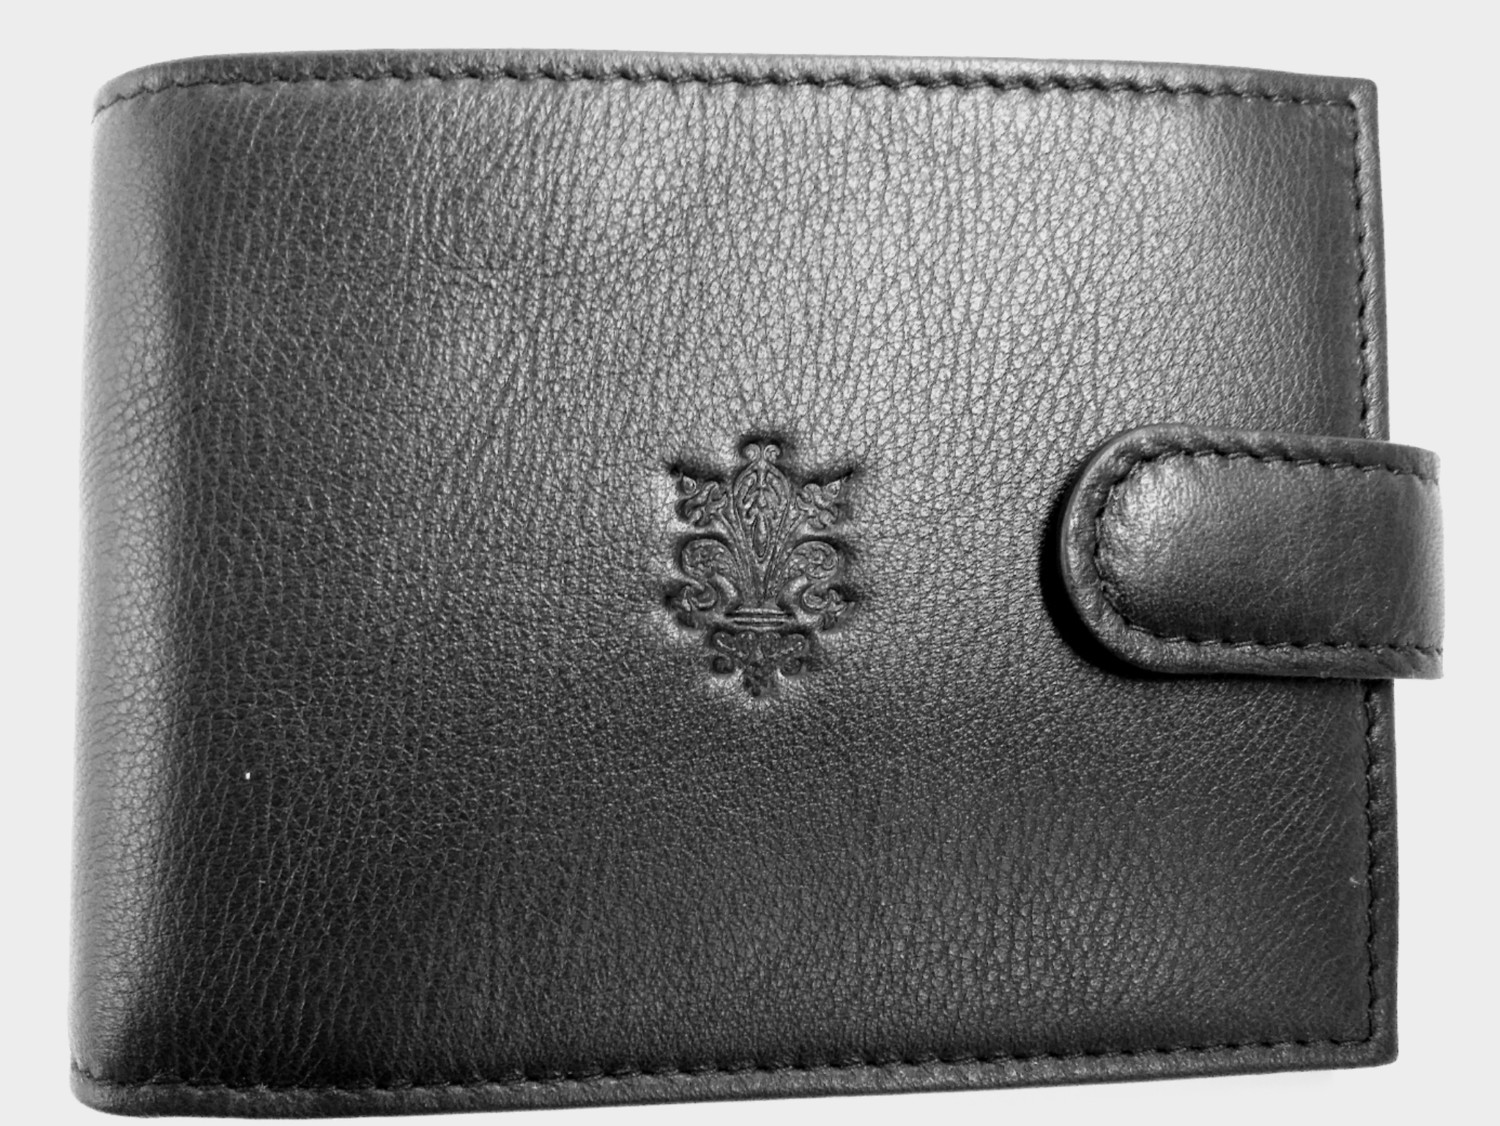 Tuscany leather wallet